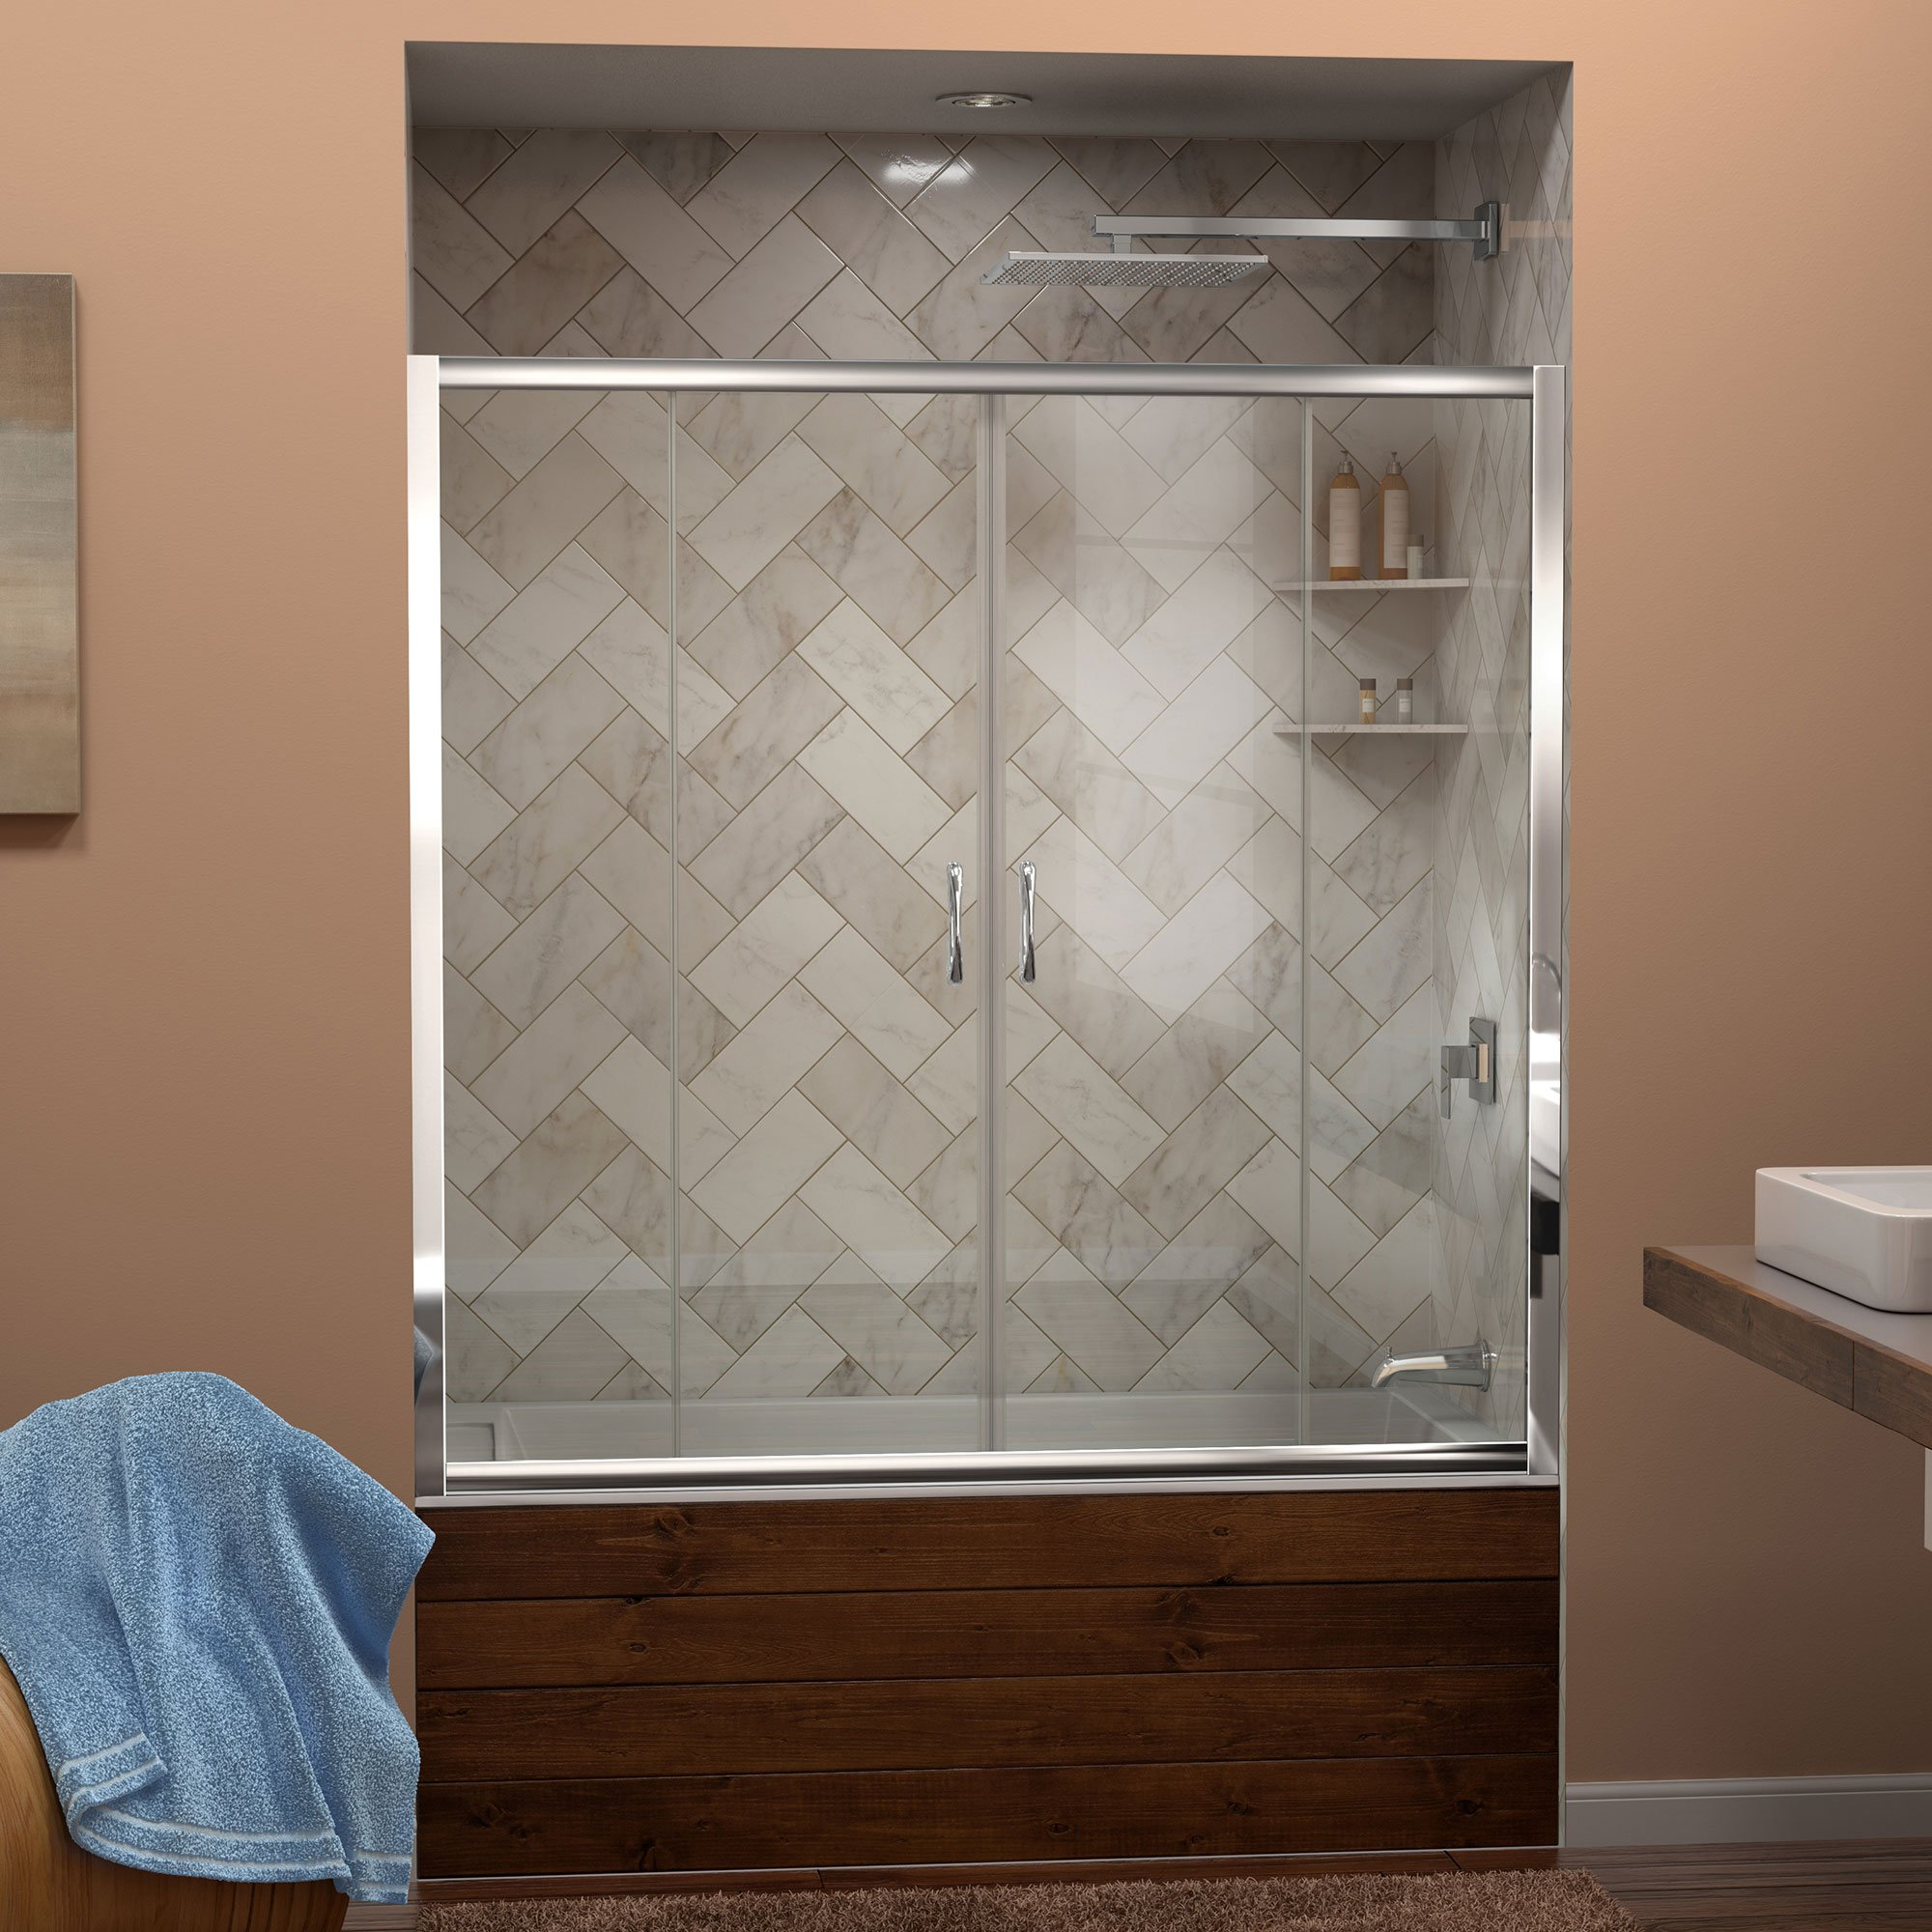 DreamLine Visions 56-60 in. Width, Frameless Sliding Tub Door, 1/4'' Glass, Chrome Finish